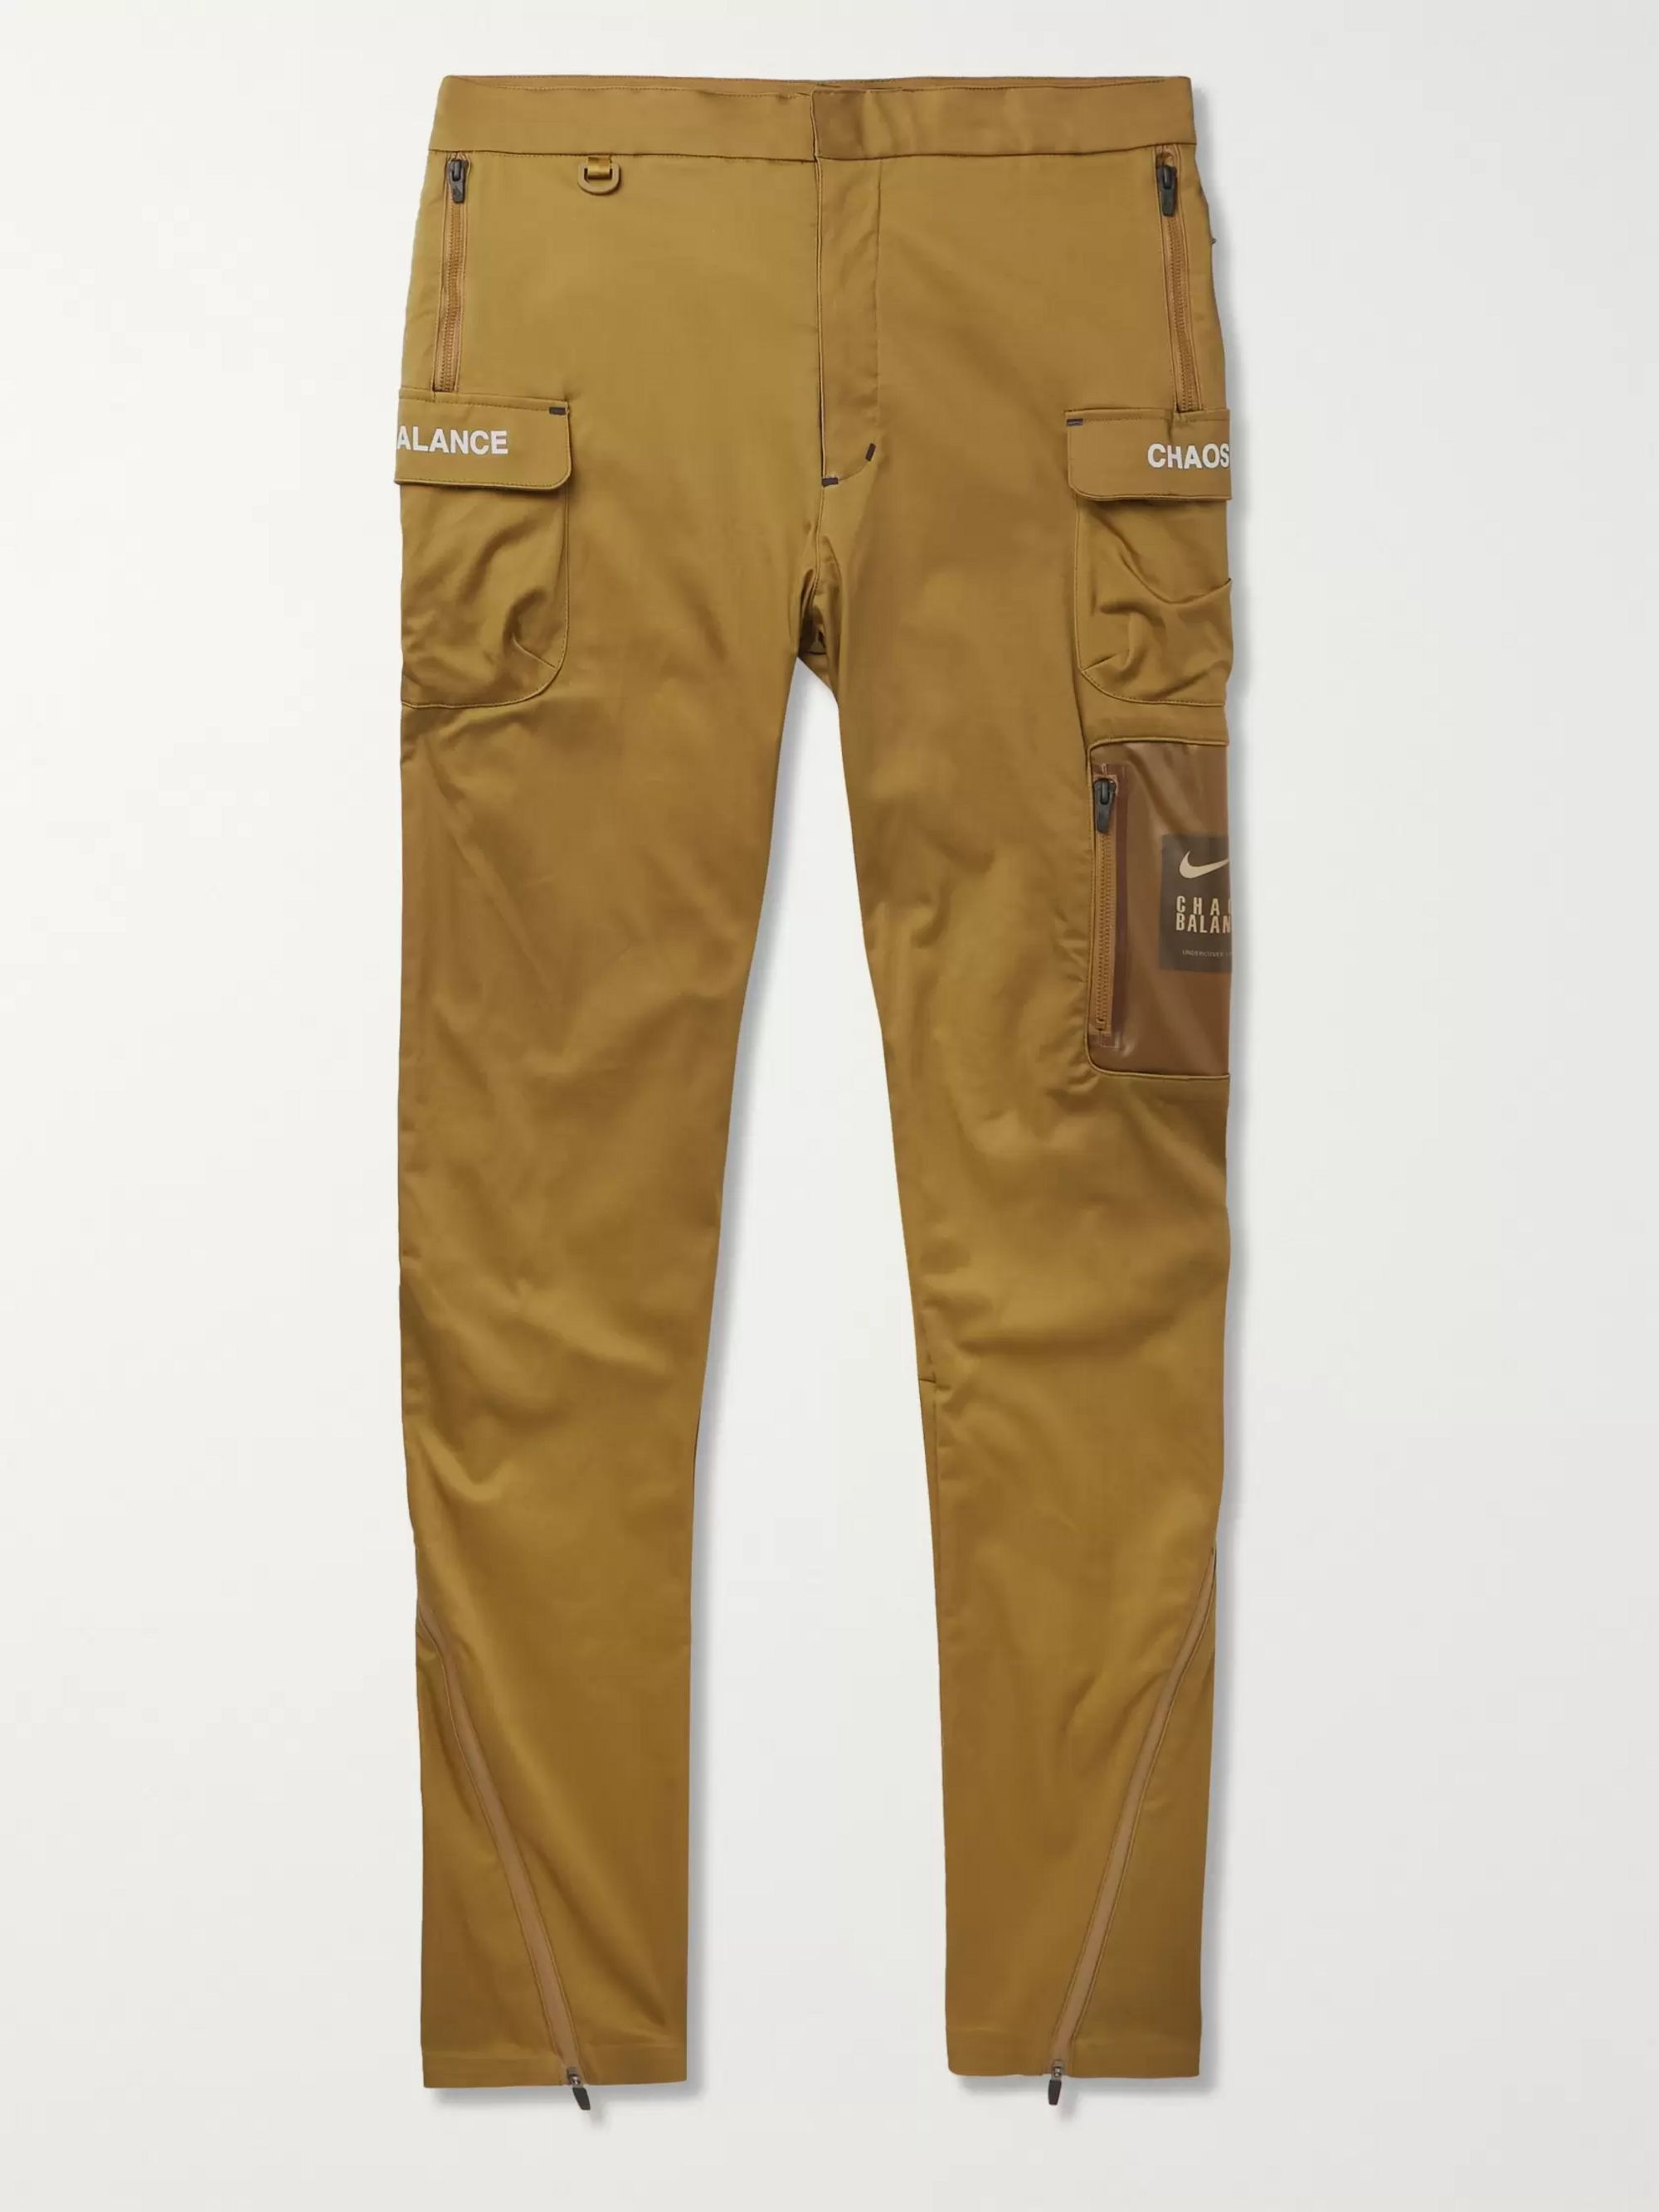 + Undercover Tapered Logo Print Cotton Blend Trousers by Nike